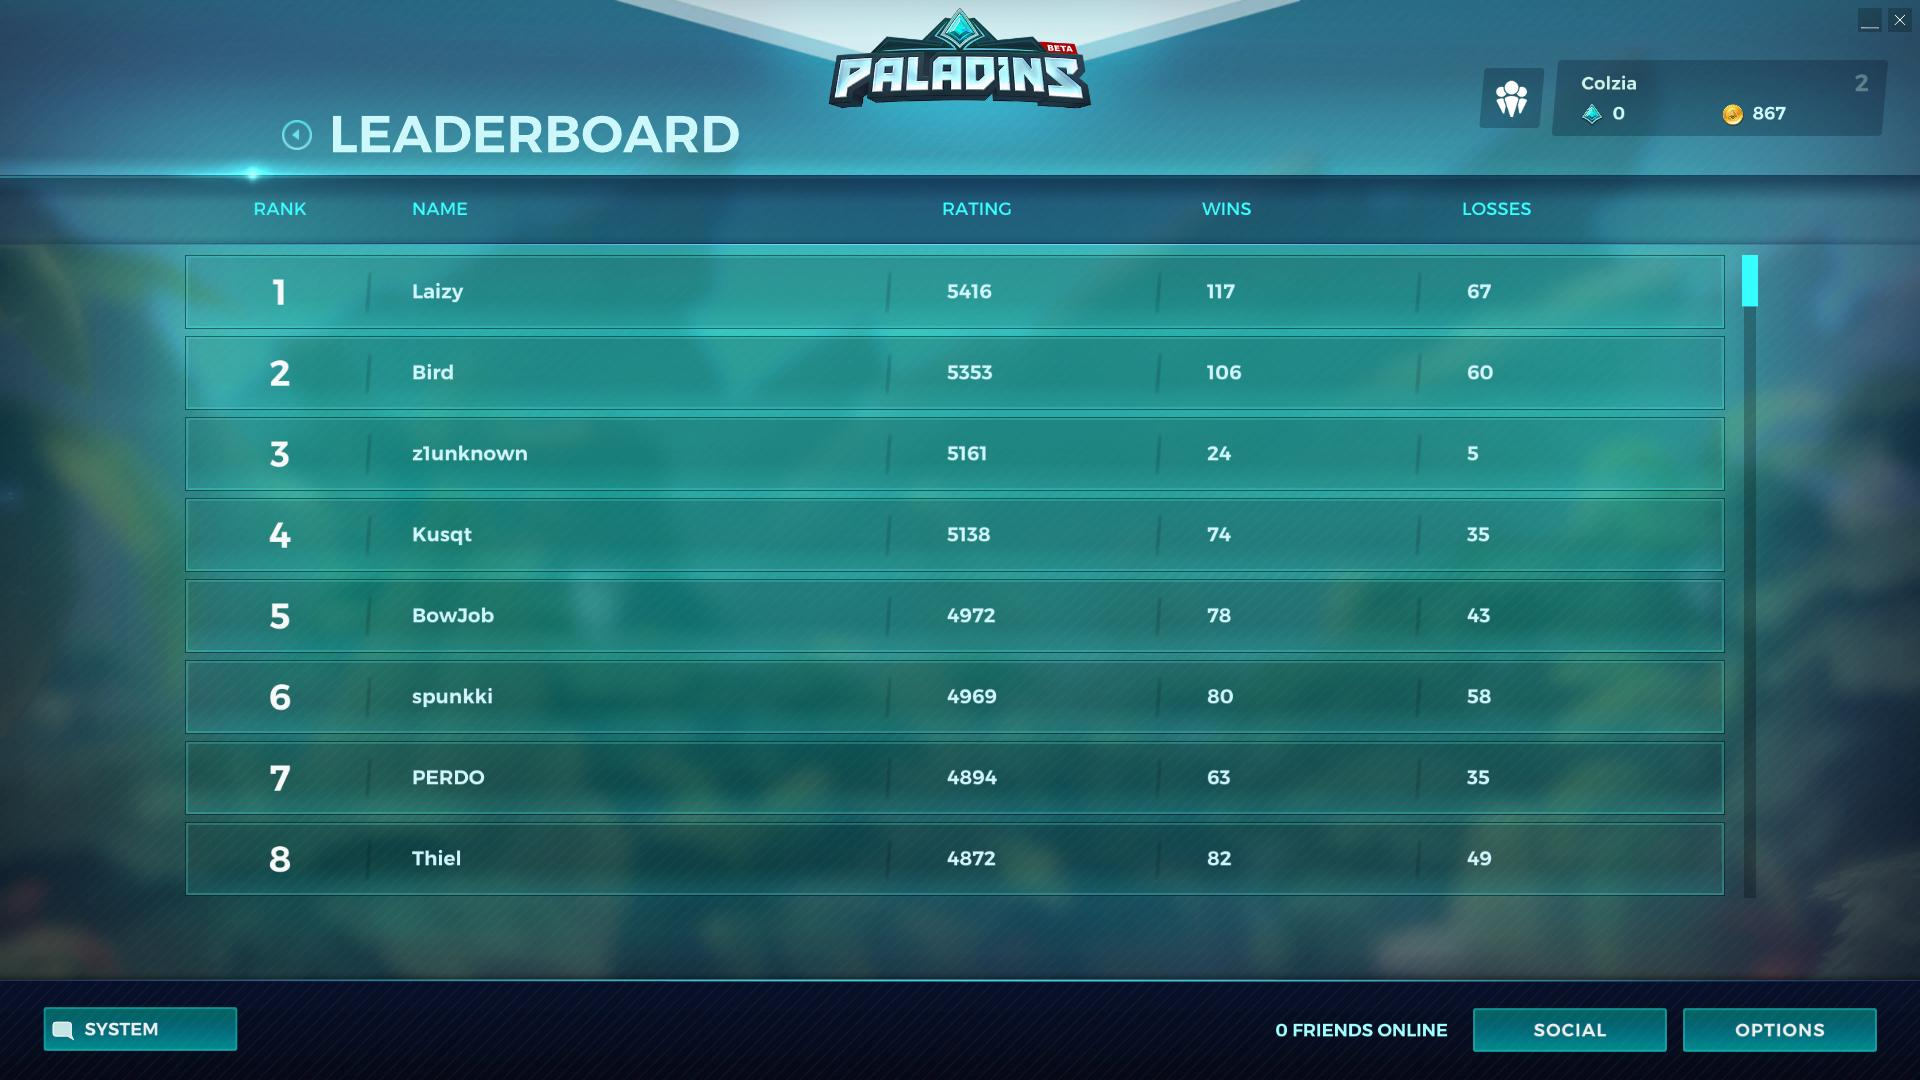 Leaderboard paladins screenshot